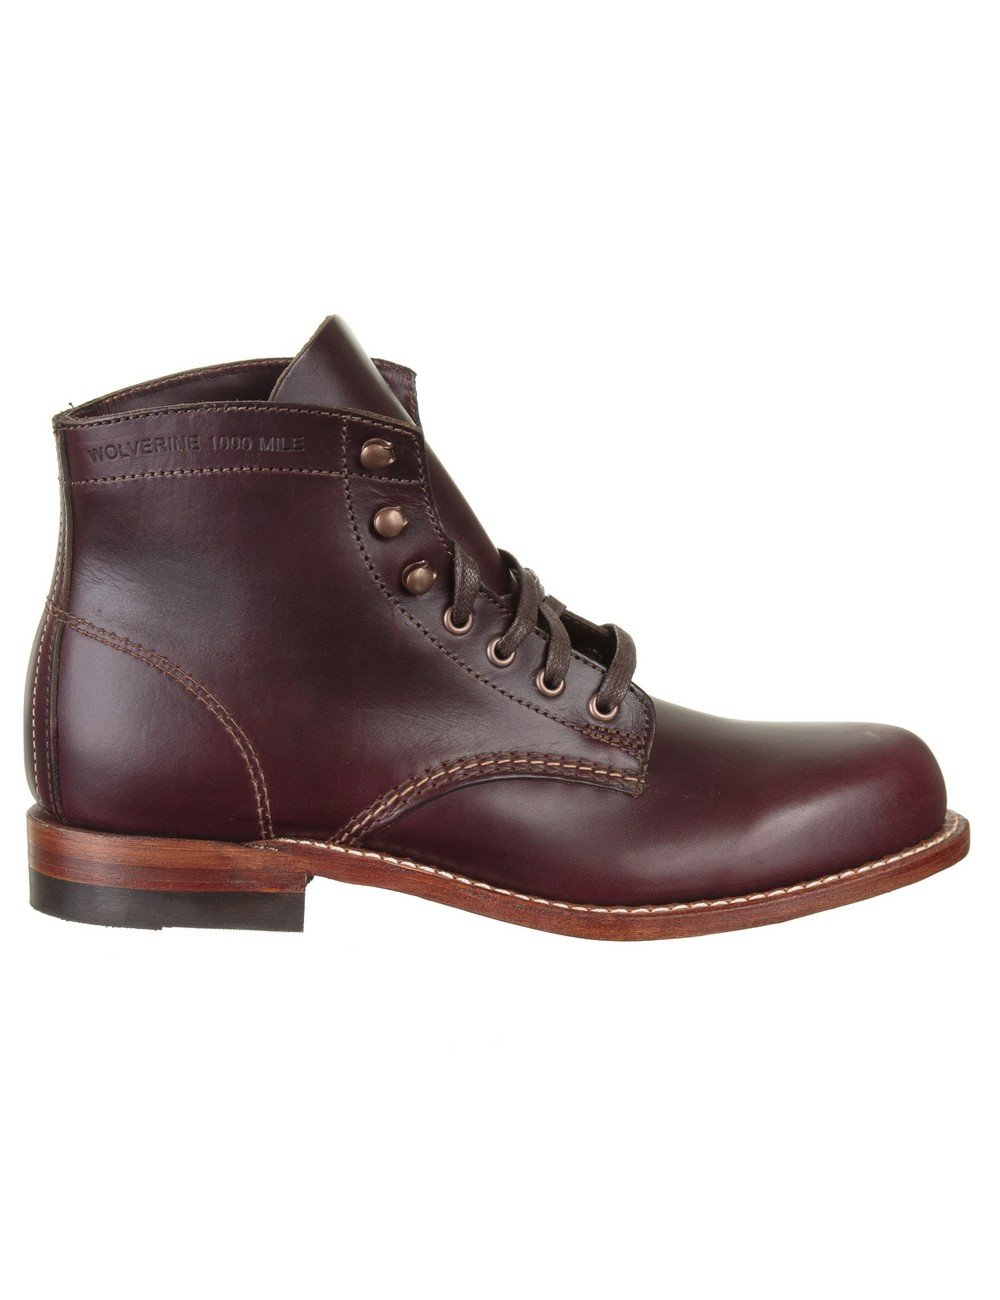 wolverine 1000 mile boot cordovan no 8 casual shoes